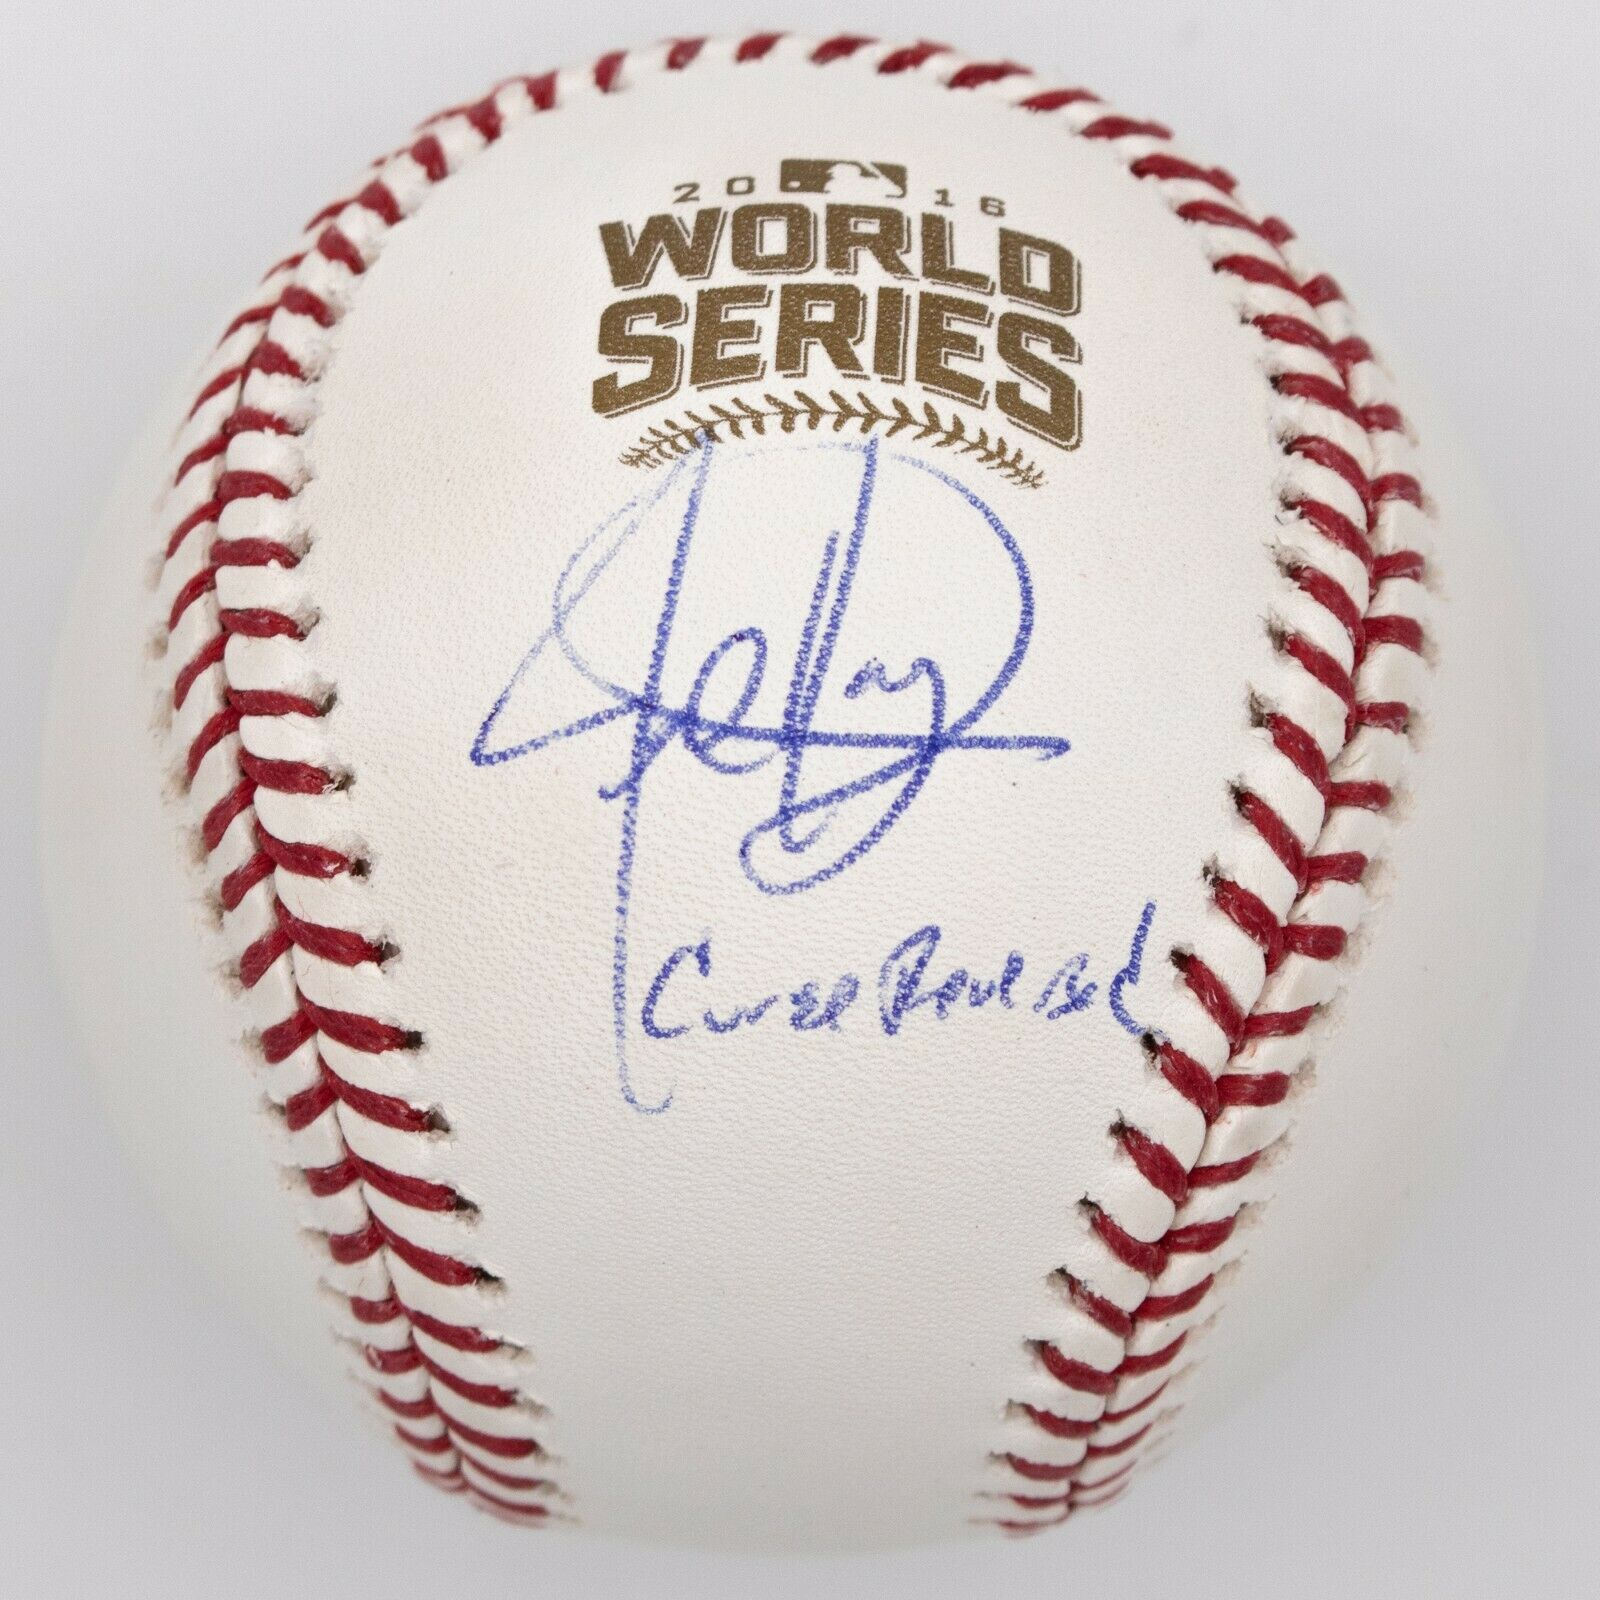 Jed Hoyer Signed 2016 World Series Baseball BAS Chicago Cubs General Manager